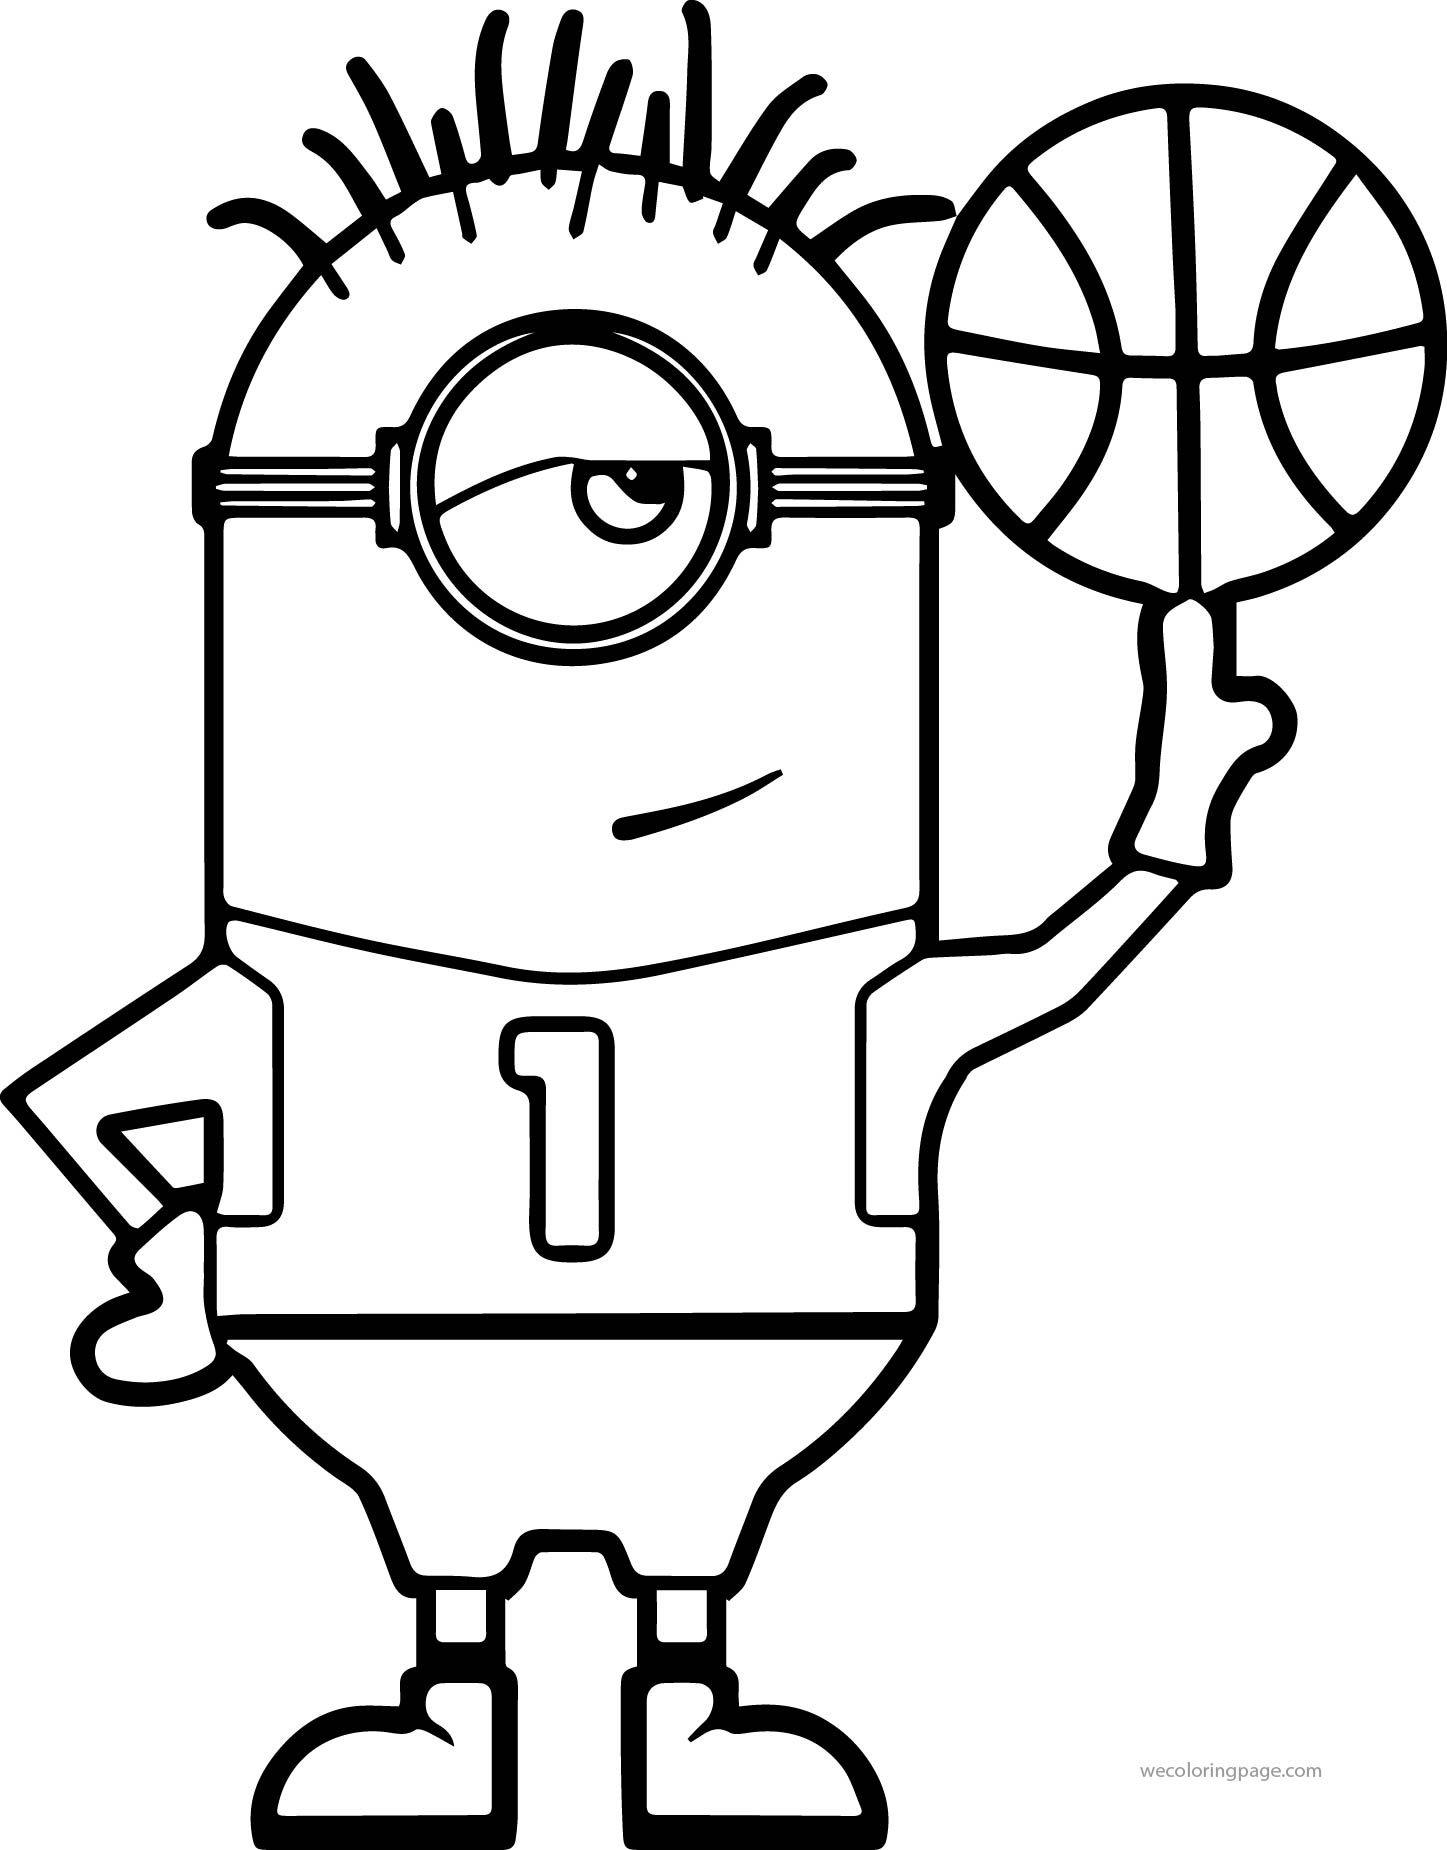 Minion Turn Basketball Coloring Page Wecoloringpage How To Turn A Picture Into A Coloring Page